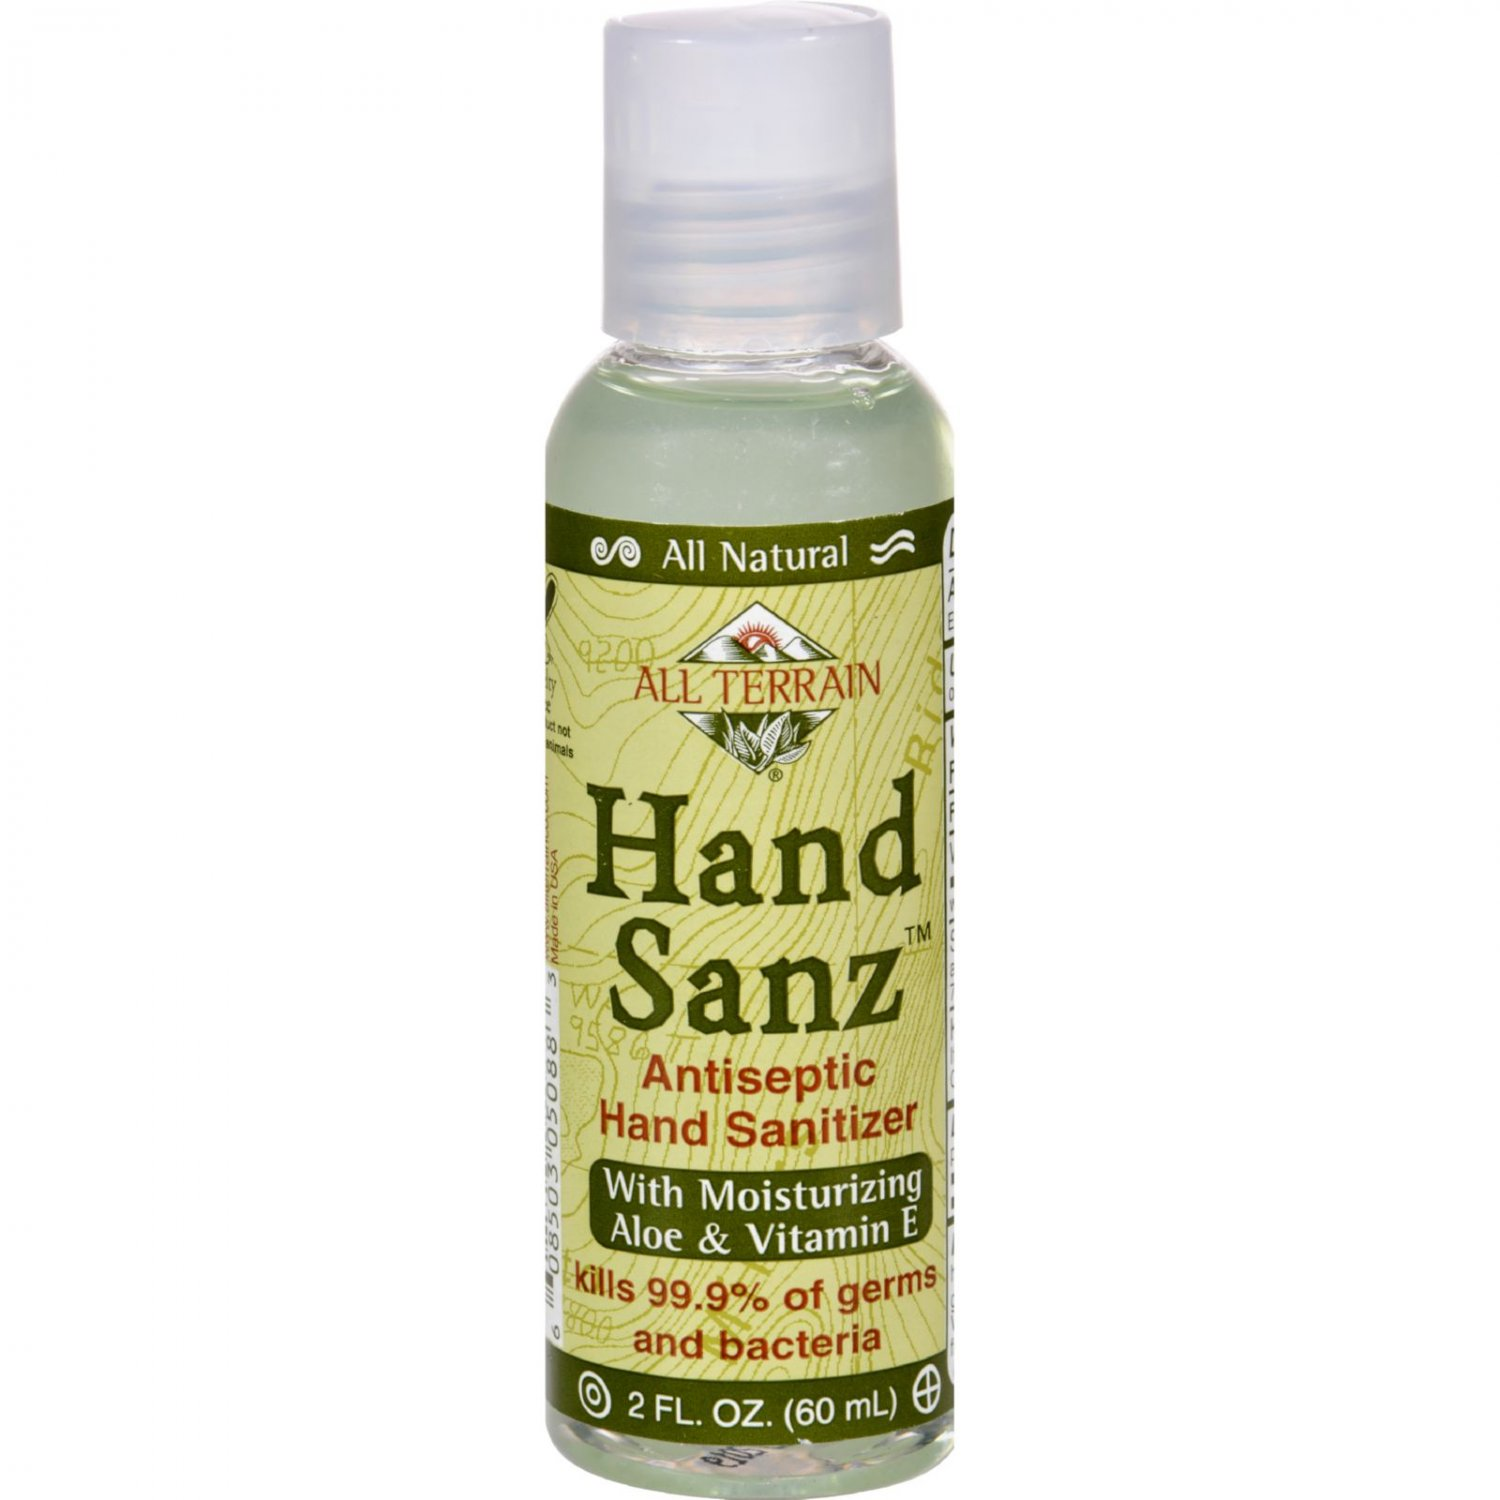 All Terrain Antiseptic Hand Sanitizer with Aloe and Vitamin E - 2 oz